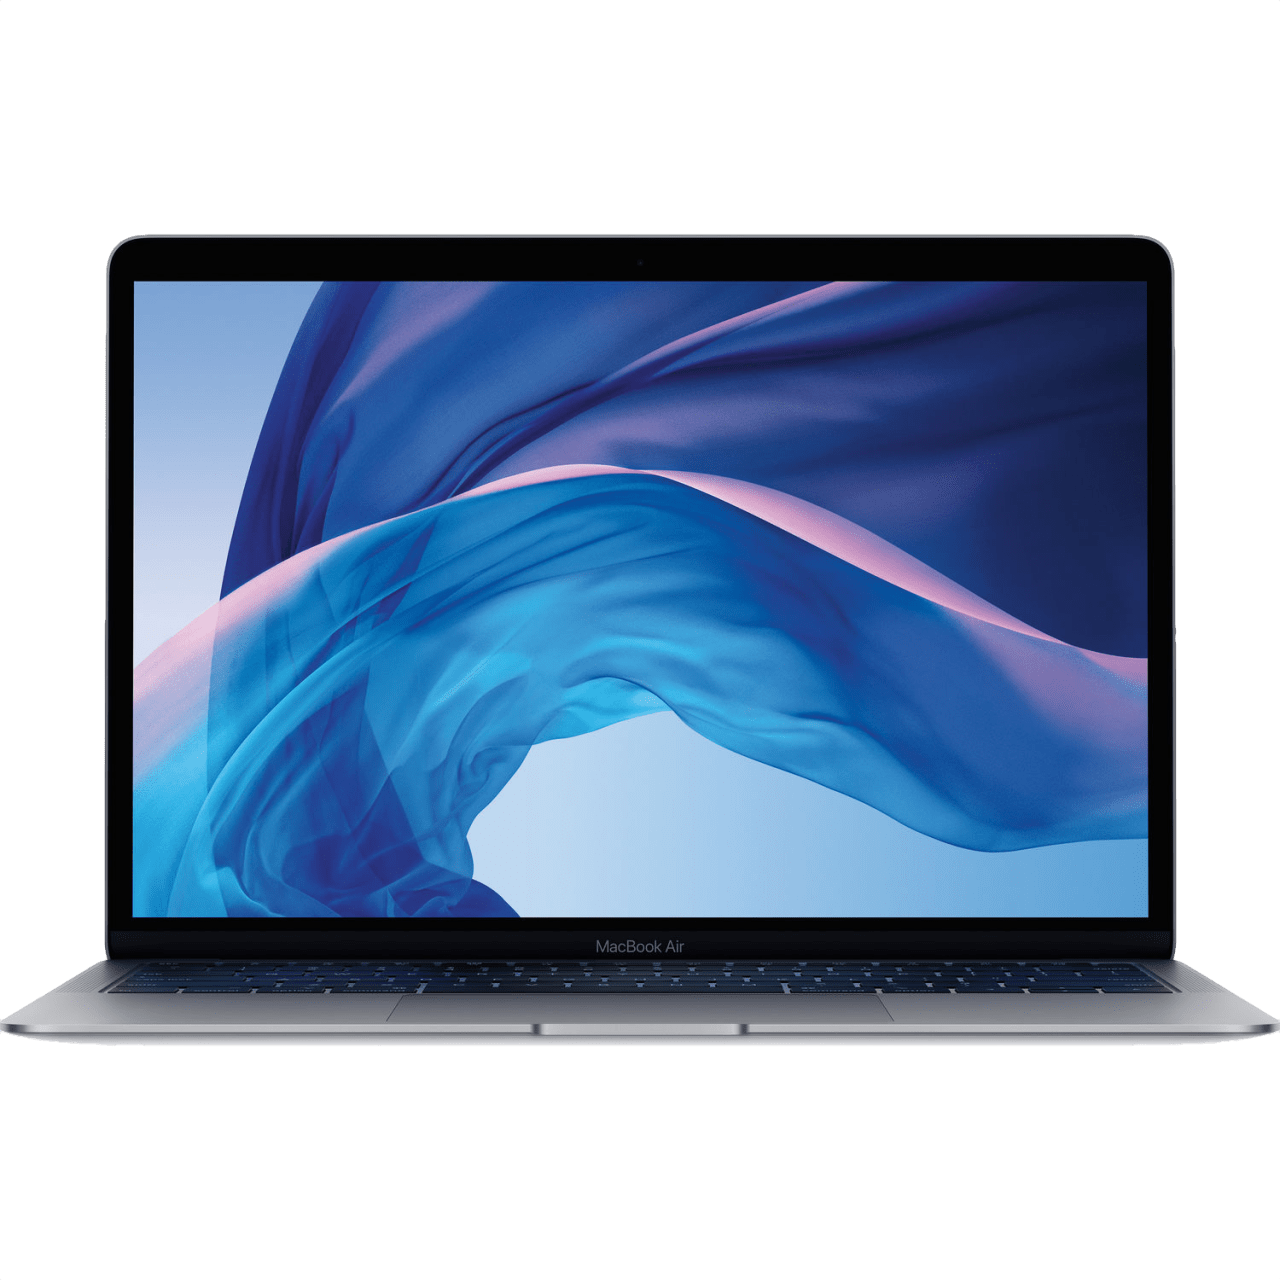 Space Grau Apple MacBook Air (Mid 2019) Notebook - Intel® Core™ i5-8210Y - 8GB - 256GB SSD - Intel® UHD Graphics 617.1